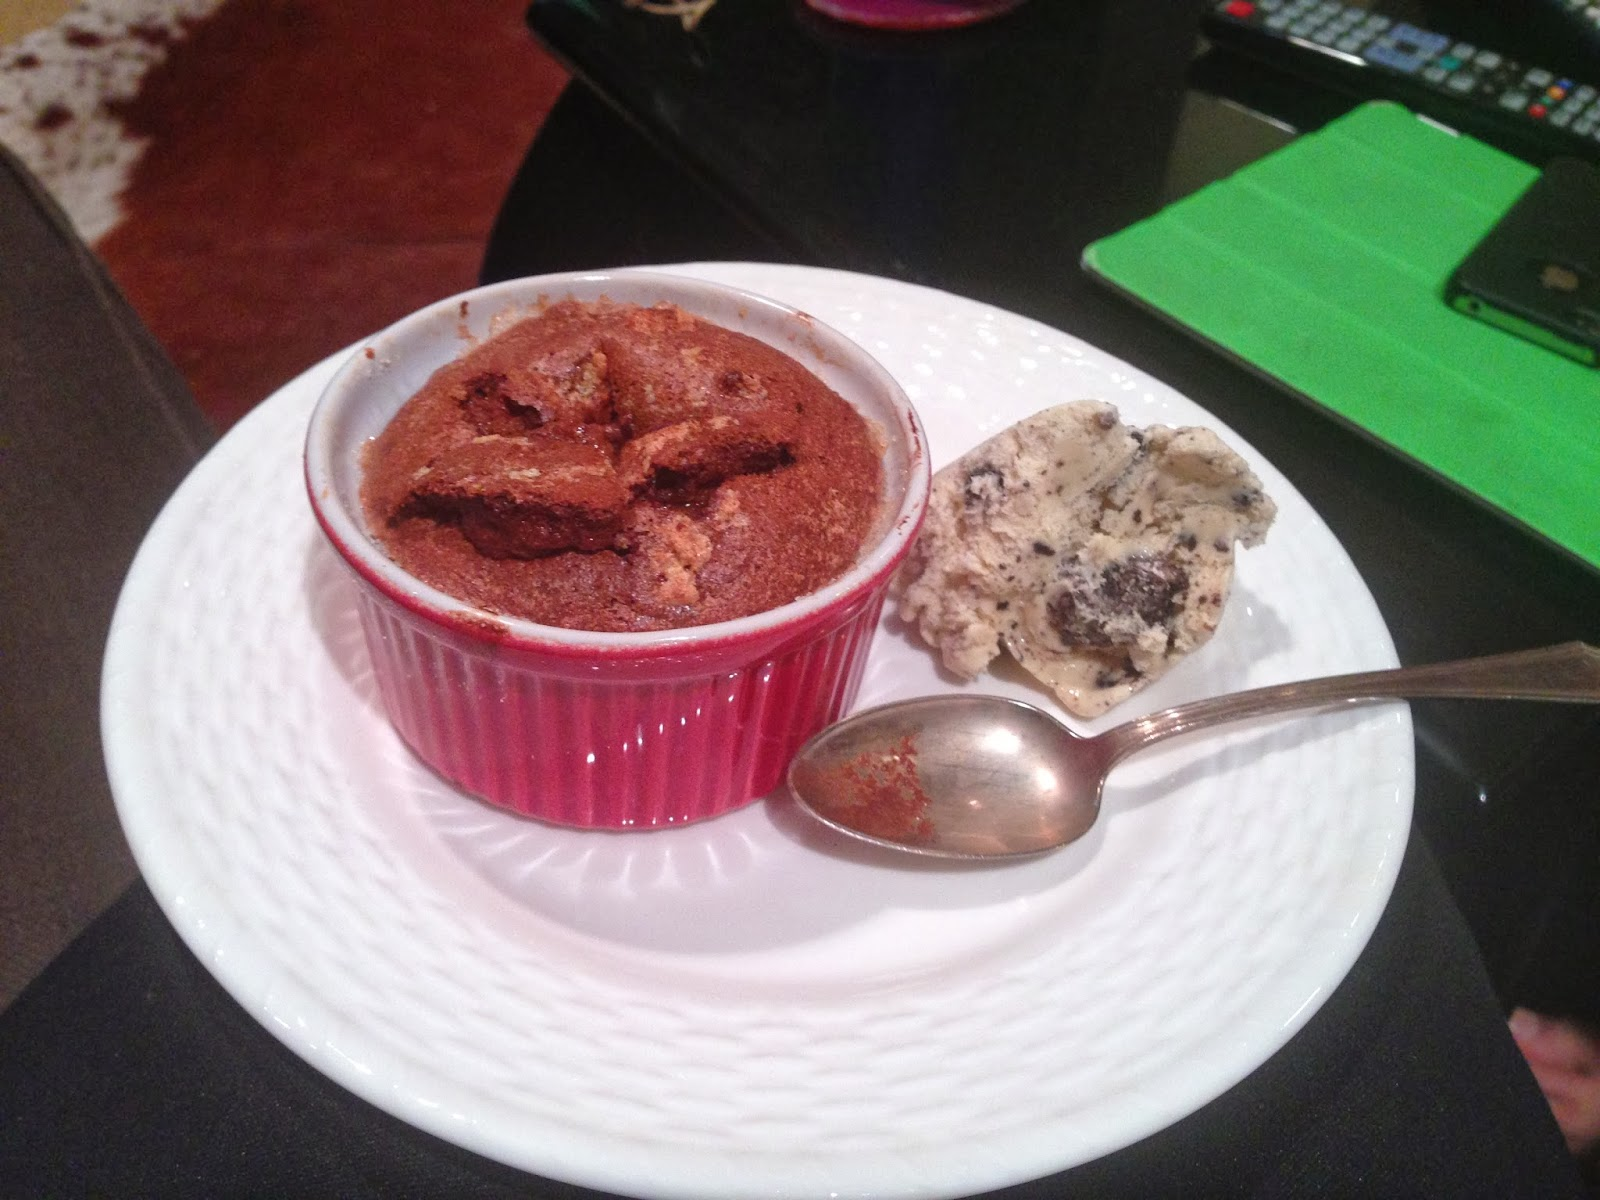 Sybil's Spoon: Make-Ahead Individual Chocolate Souffles